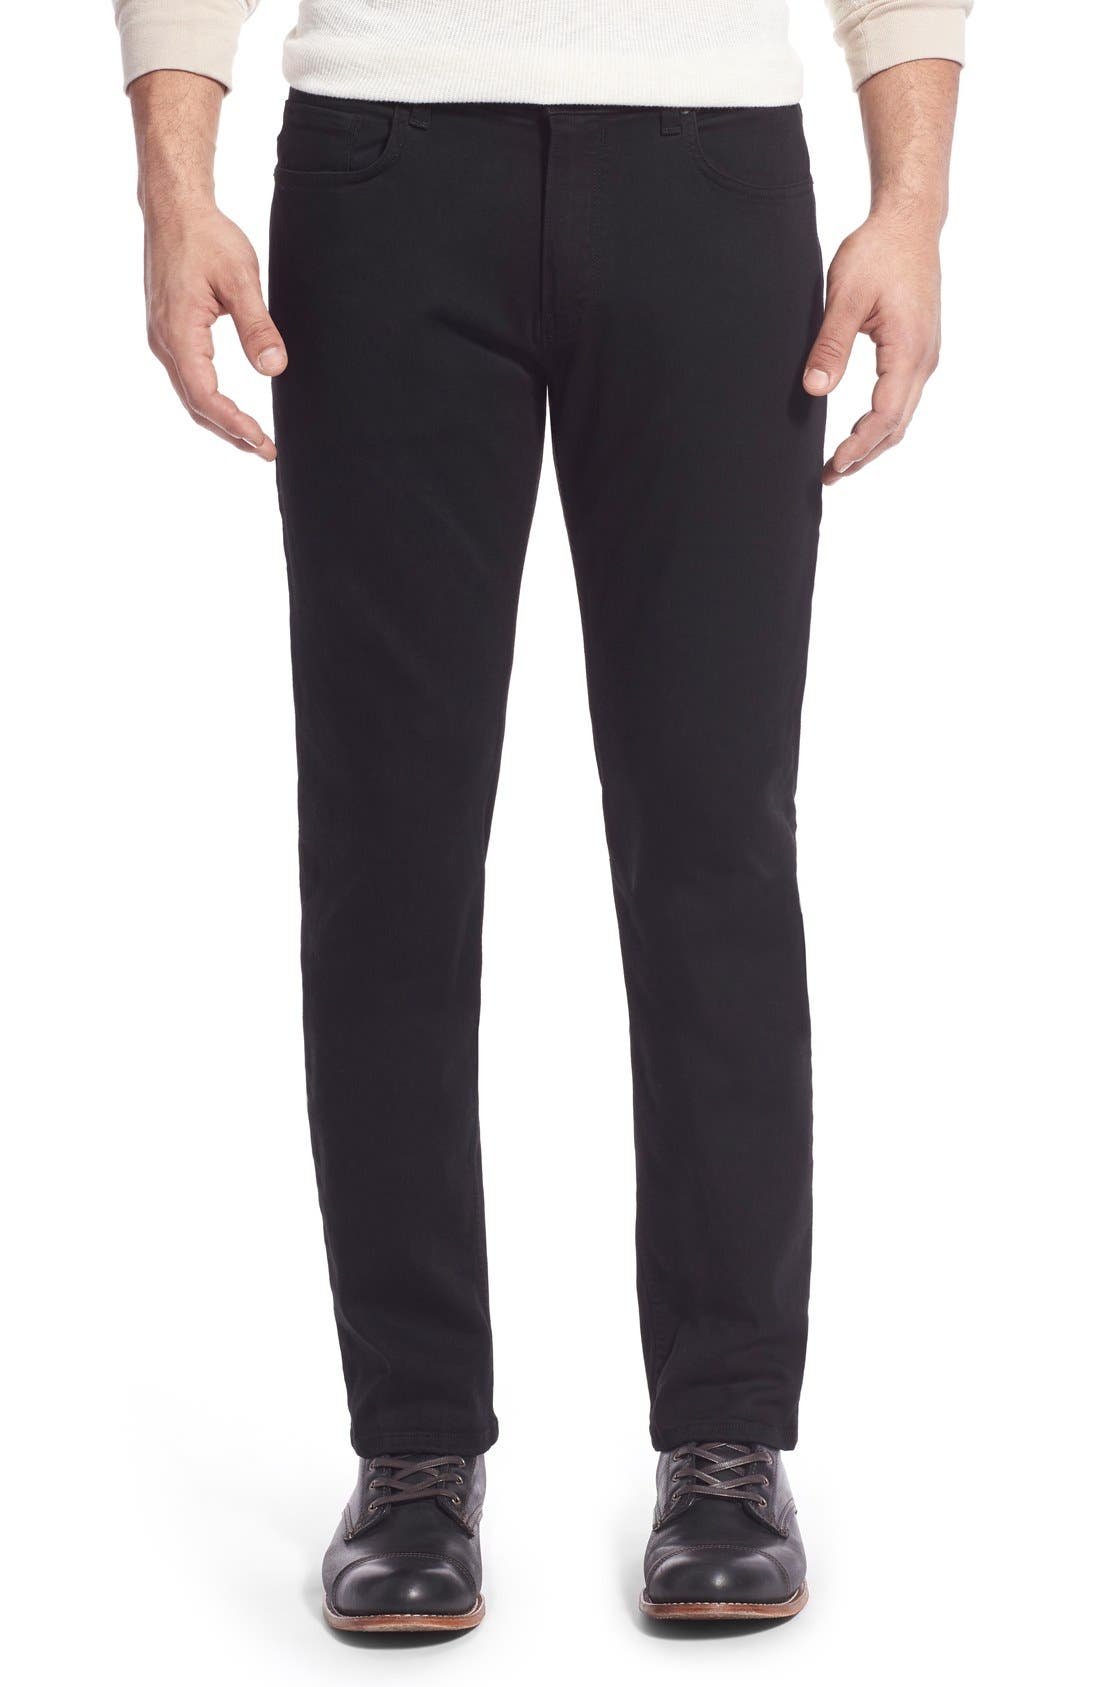 PAIGE Transcend - Normandie Straight Fit Jeans, Main, color, BLACK SHADOW